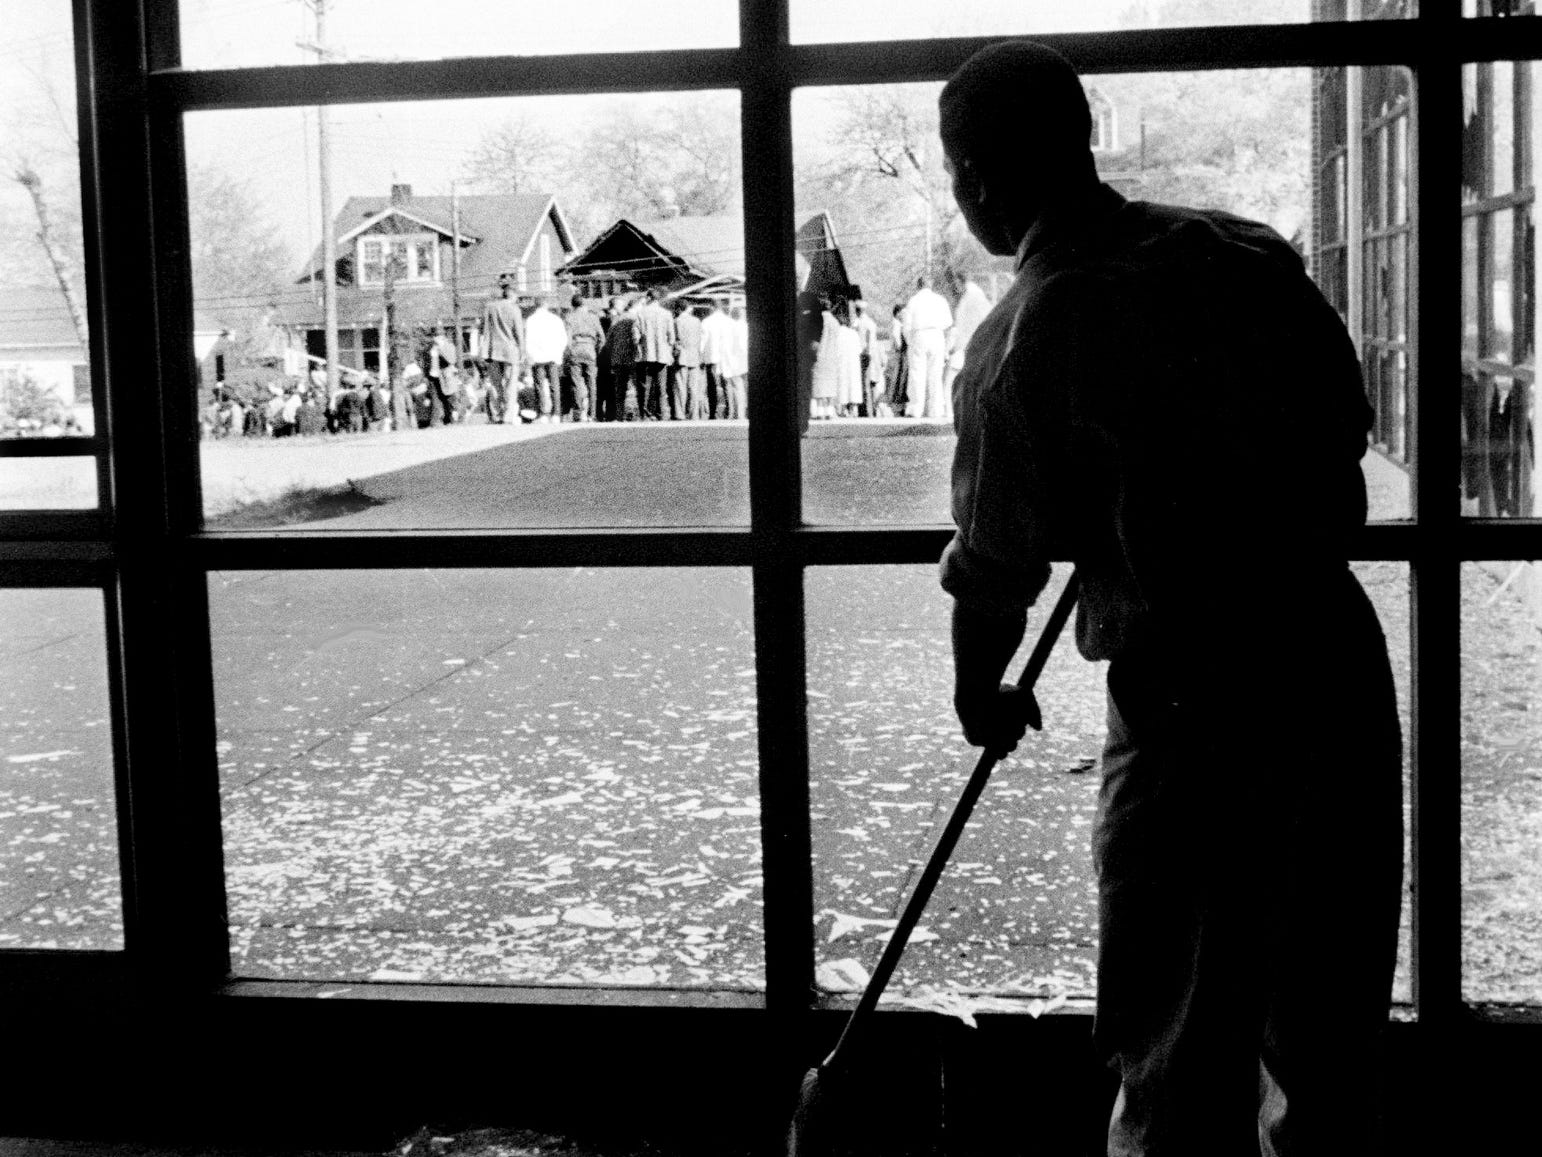 Silhouetted against disaster, John Thomas Martin wields his broom, sweeping up the fragments of glass from shattered windows in the Meharry Medical College Alumni building April 19, 1960. In the background, a curious crowd gathers at the bombed home of Z. Alexander Looby, which shattered 147 windows at the college.